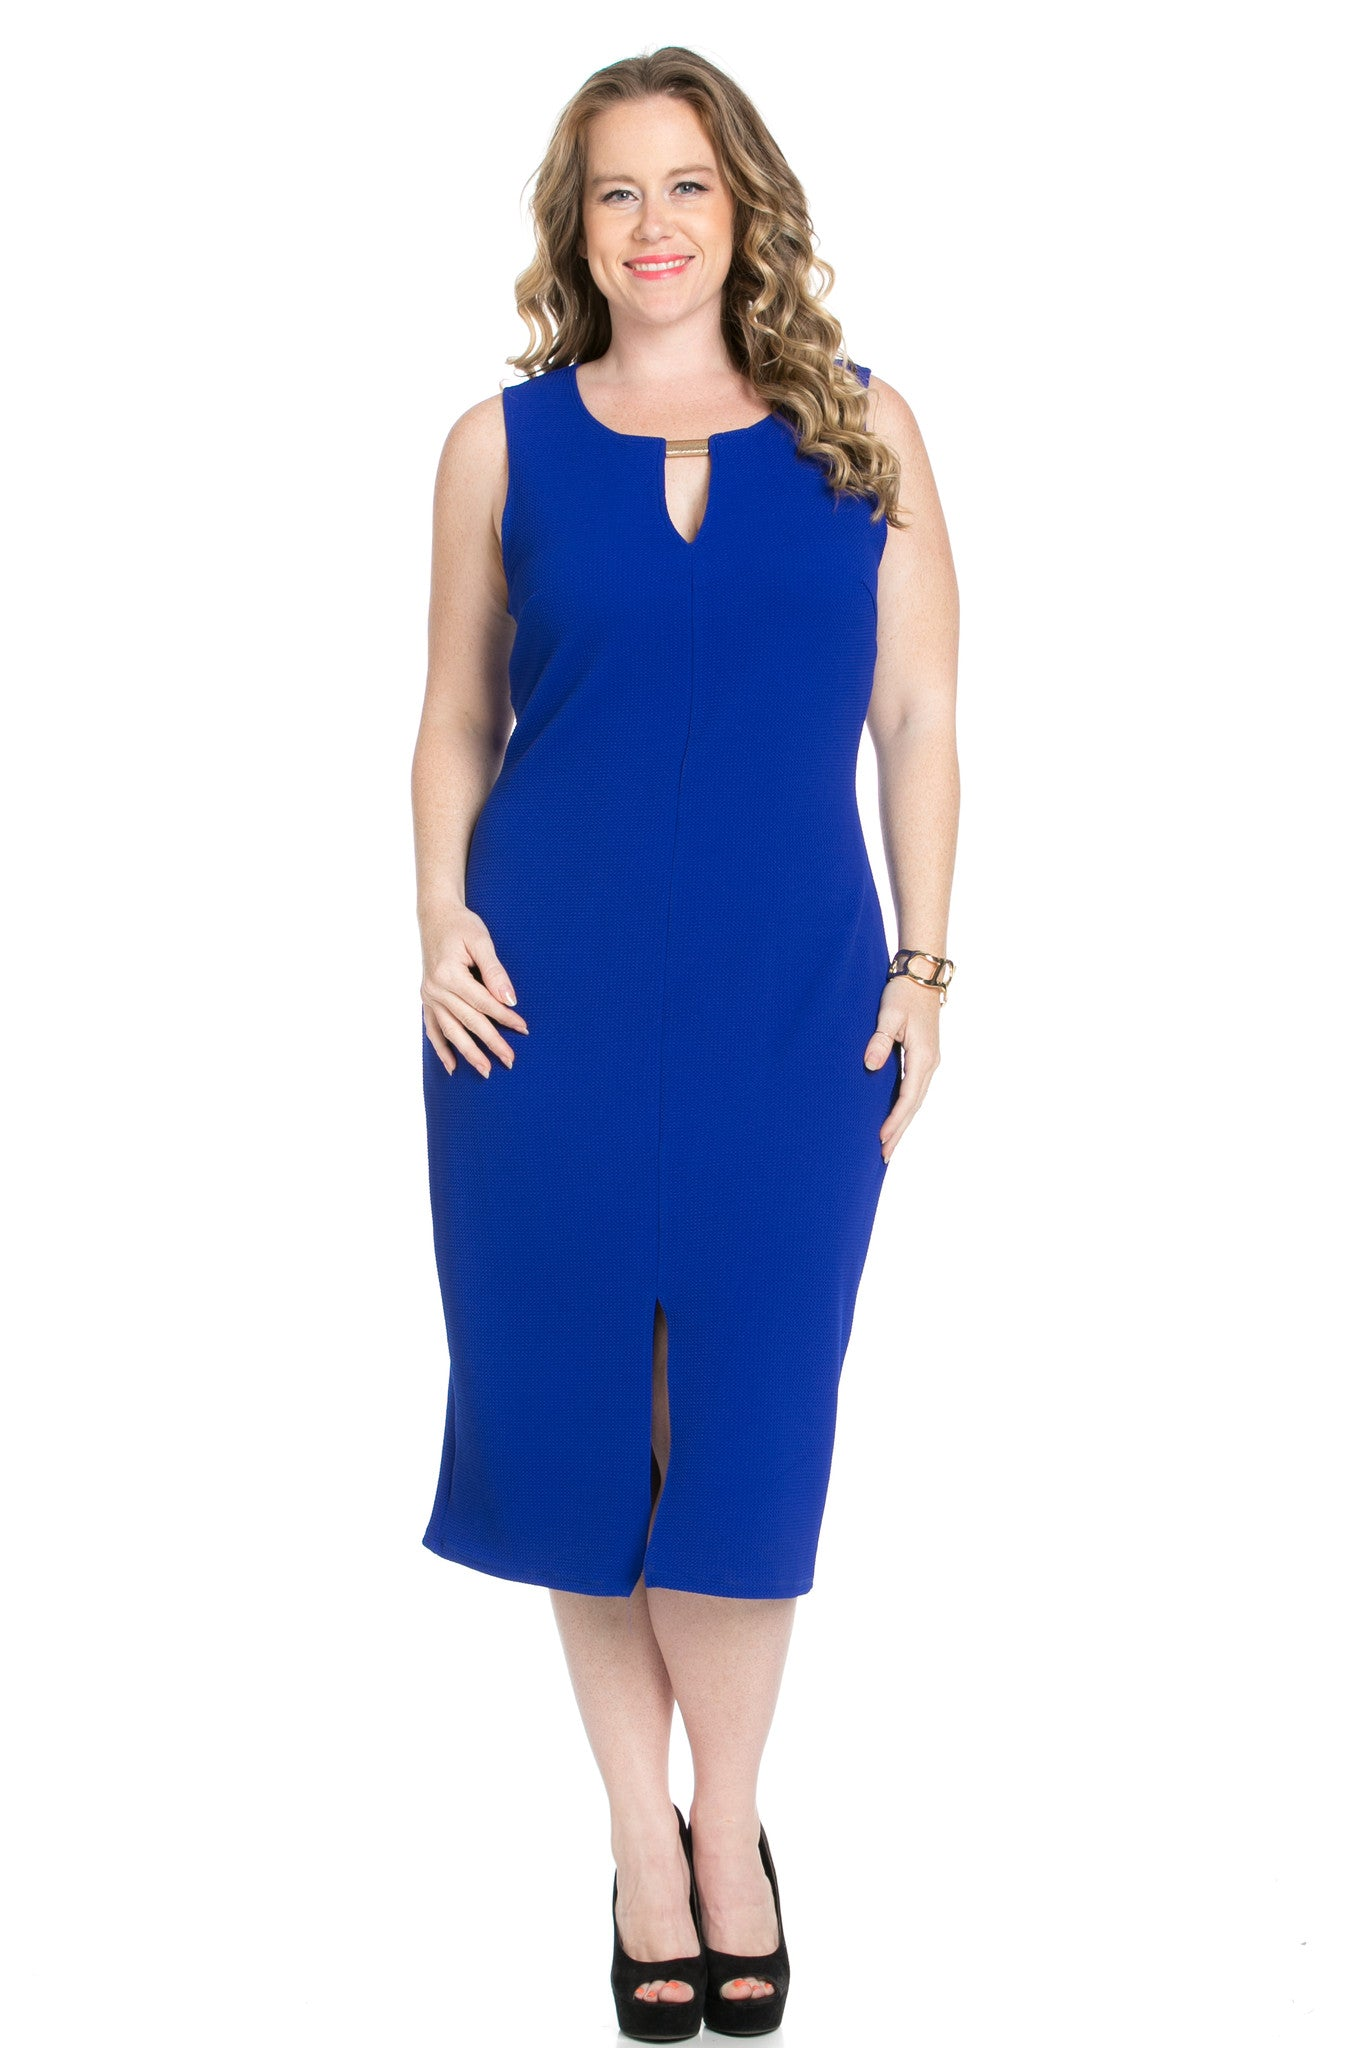 Royal Blue Modest a Bit with Bare Shoulders Dress - Dresses - My Yuccie - 4